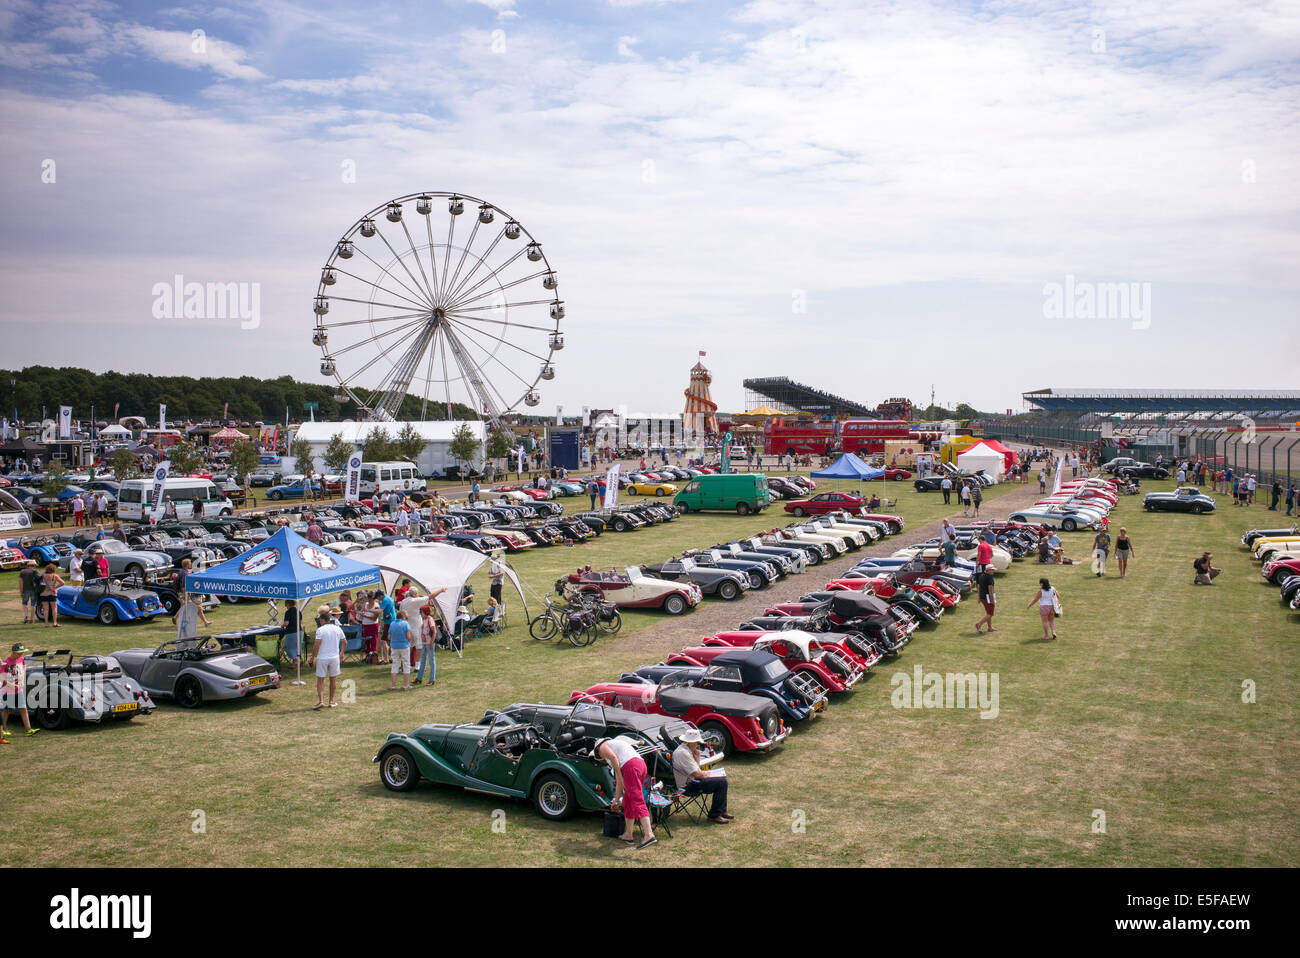 Silverstone Stock Photos & Silverstone Stock Images - Alamy